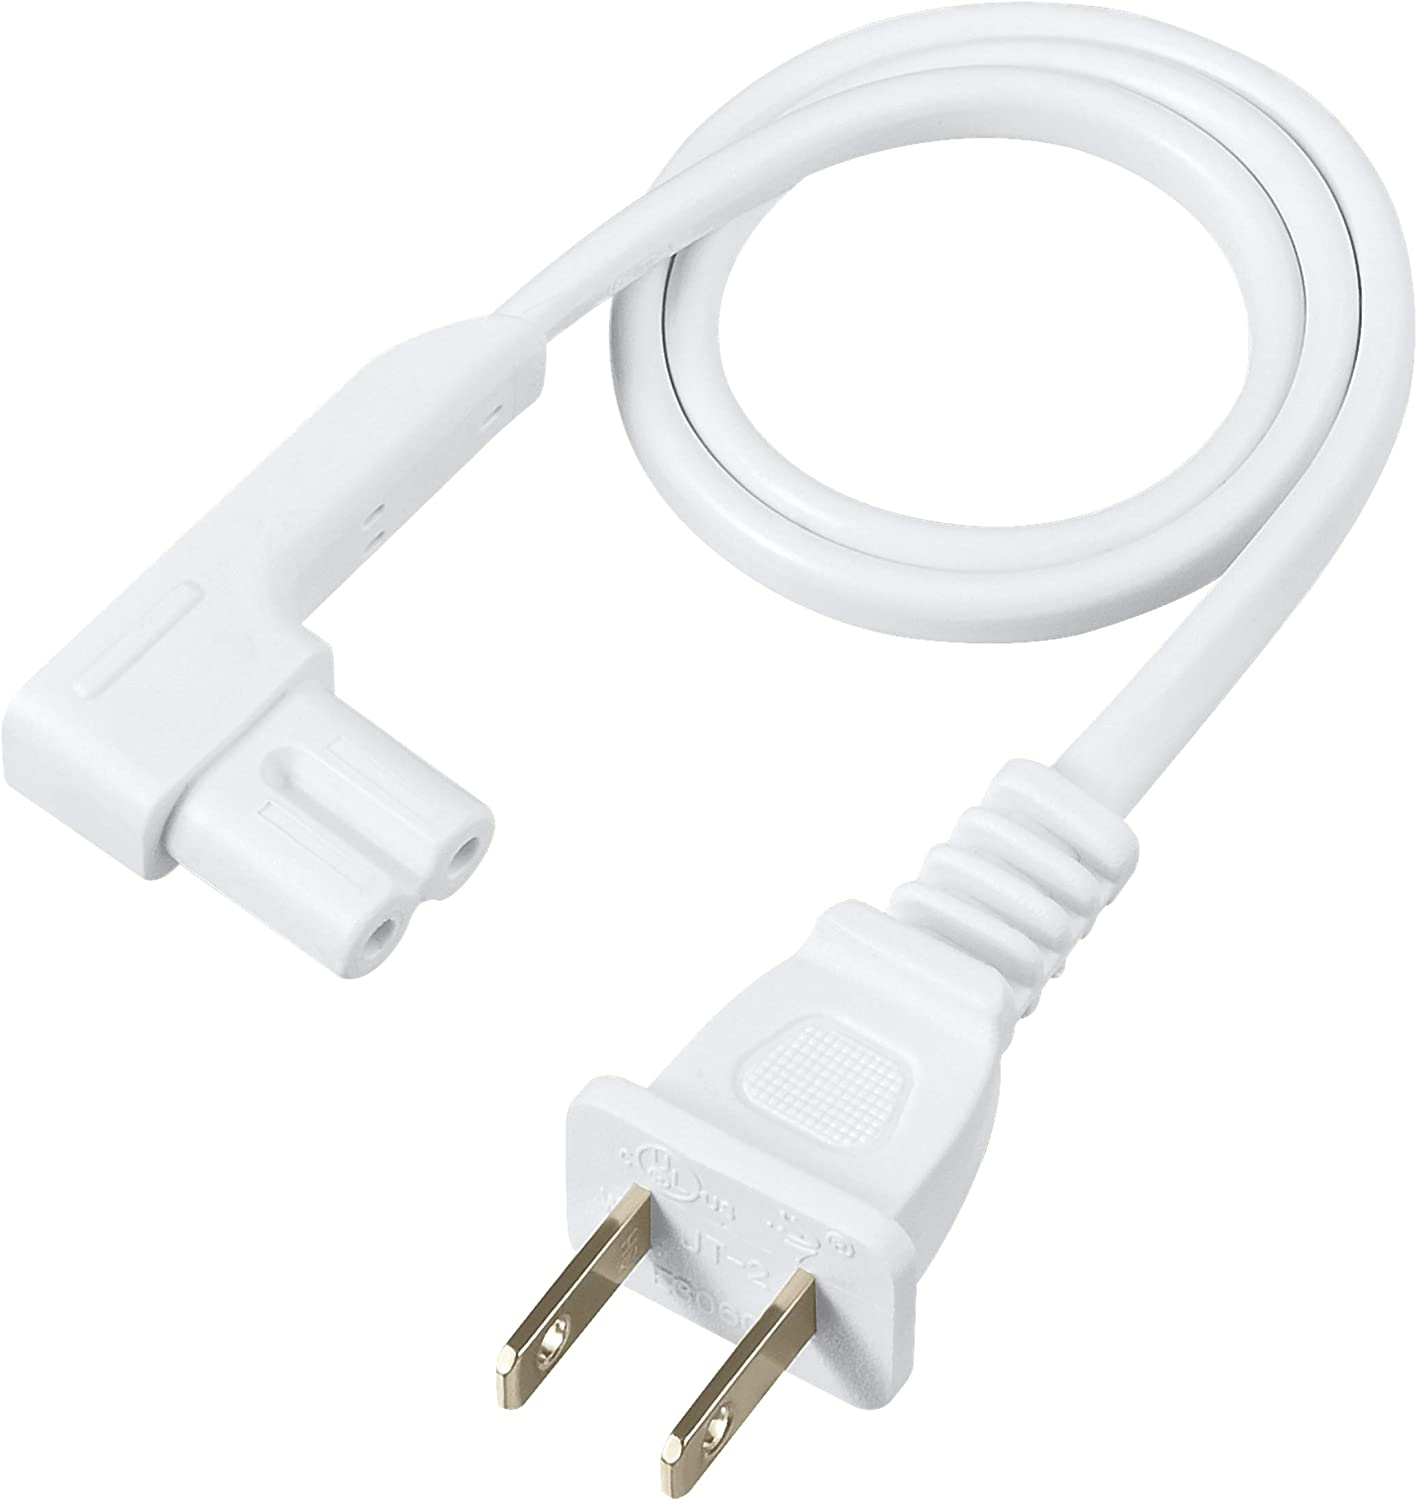 Compatible with Sonos Play One Power Cable Cord Extra Long, White Sonos Play-1 and Sonos One SL Speaker Vebner 16ft 2-Pack Power Cord Compatible with Sonos Play One